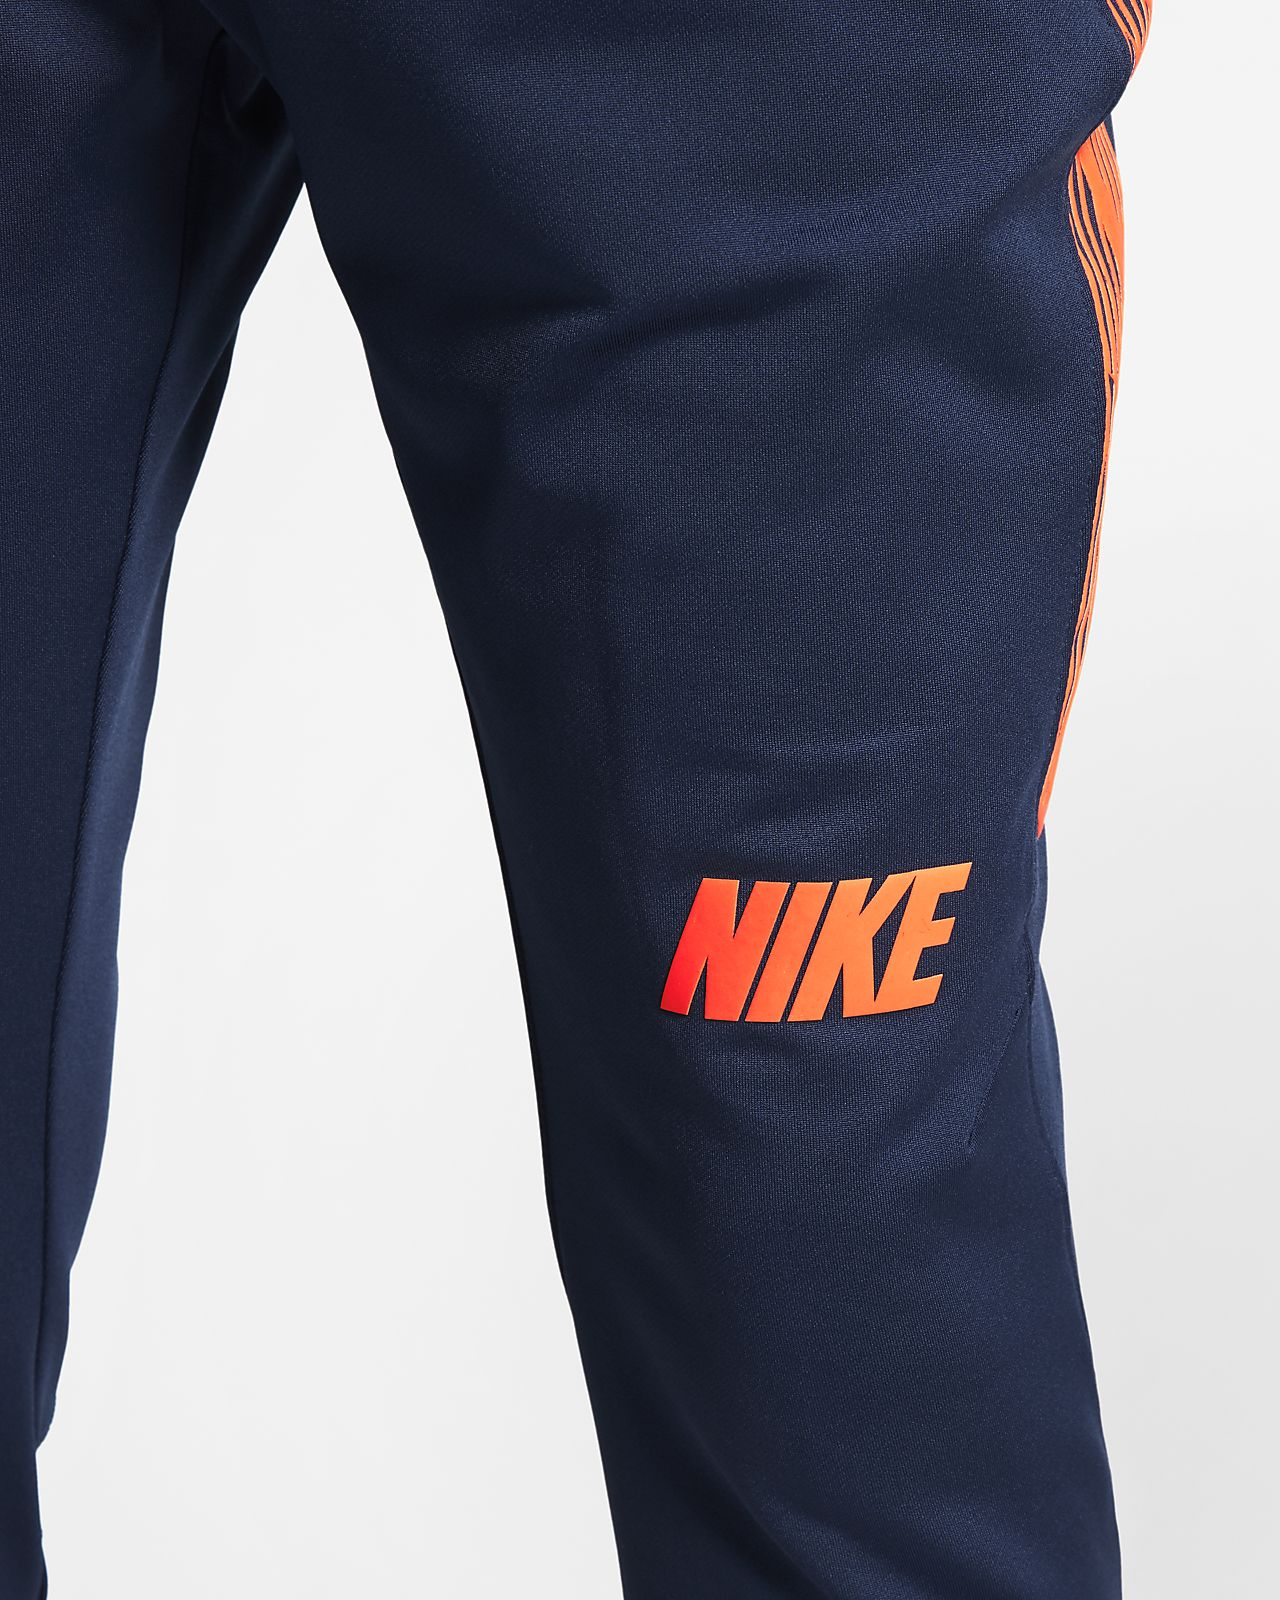 d1f9daccda3d2 Nike Dri-FIT Squad Older Kids' Football Pants. Nike.com NL